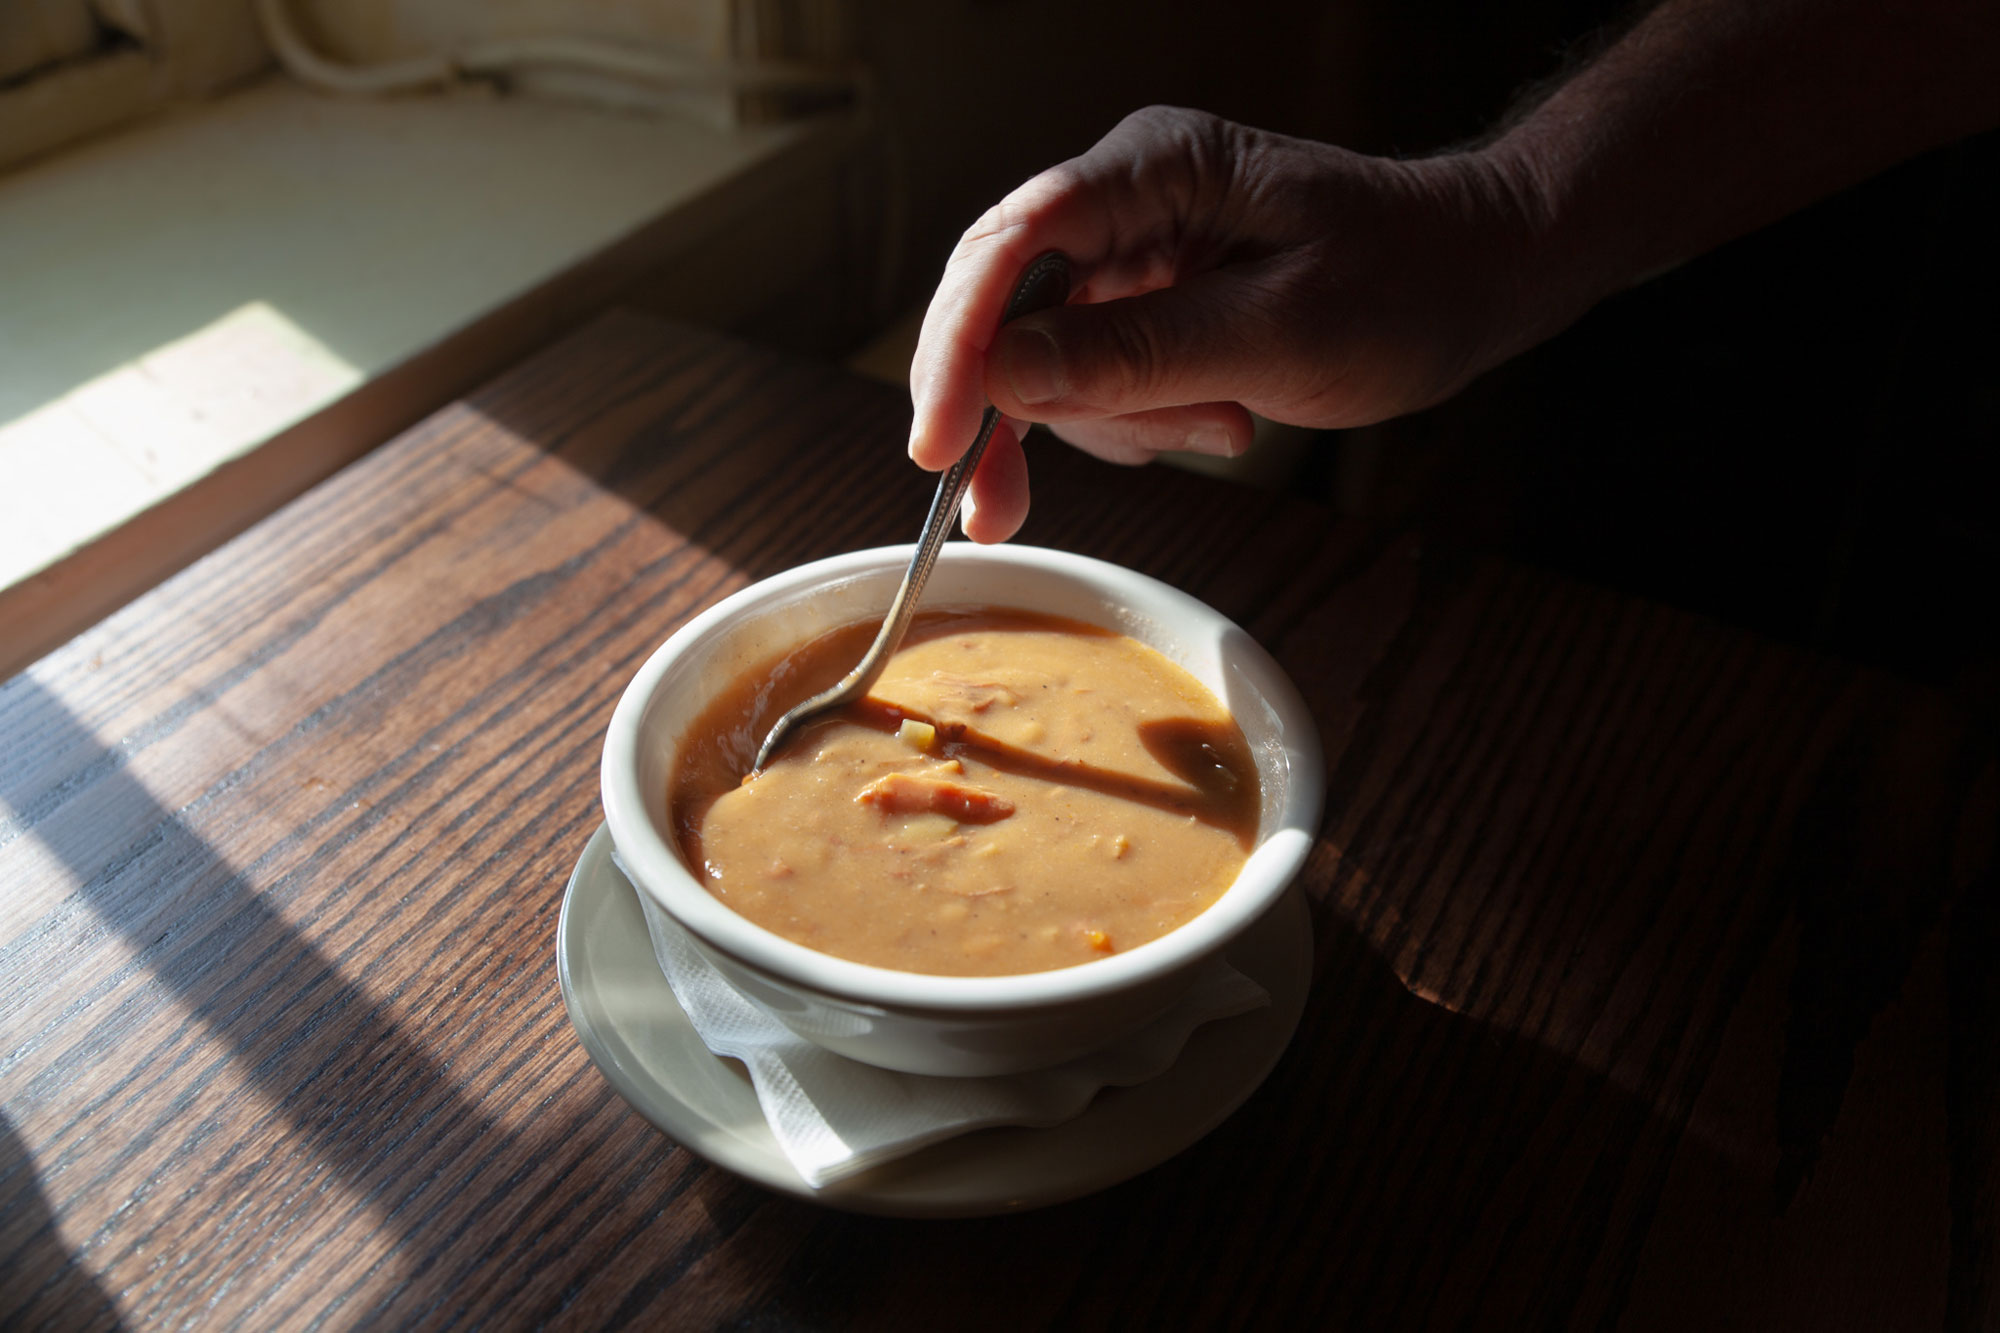 A person stirring a spoon in a small bowl of snapper soup.